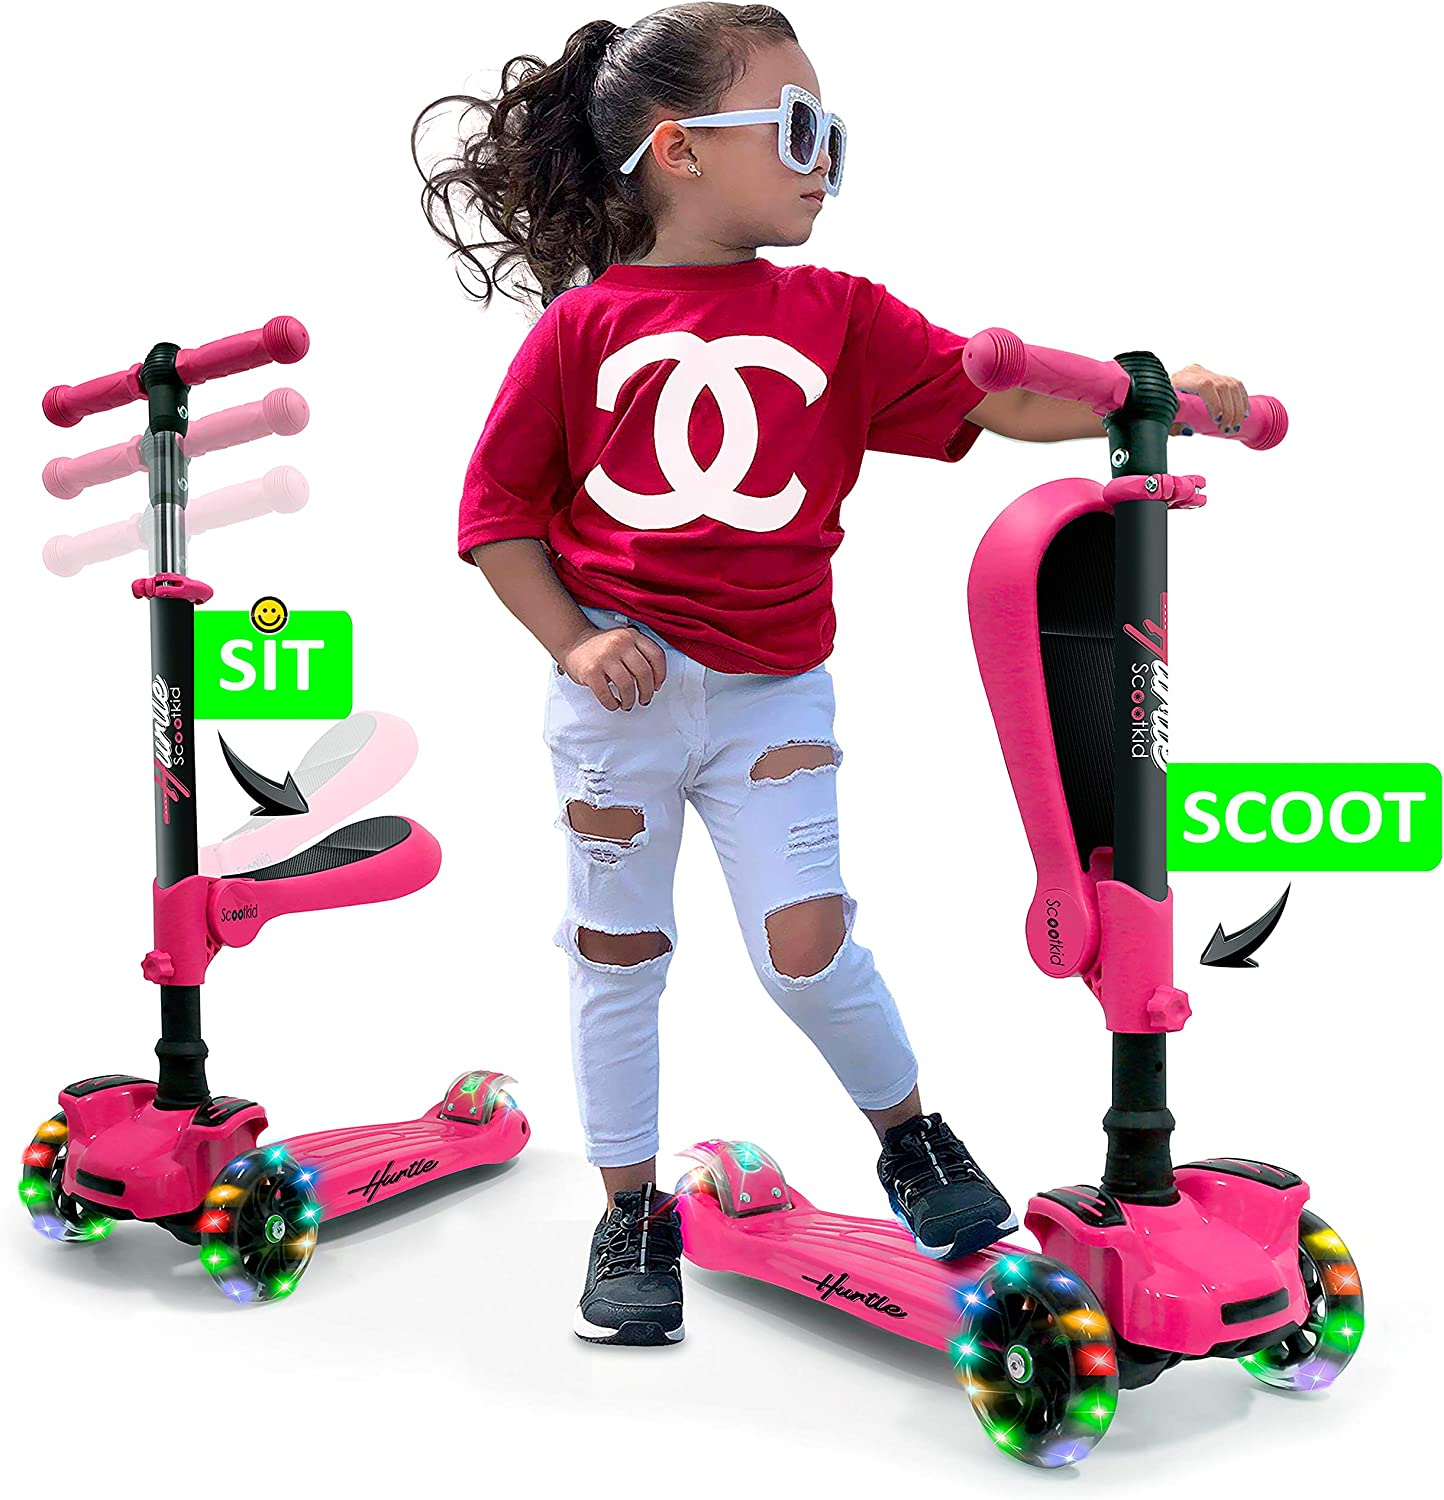 Hurtle 3 Wheeled Scooter for Kids – 2-in-1 Sit Stand Child Toddlers Toy Kick Scooters w Flip-Out Seat, Adjustable Height, Wide Deck, Flashing Wheel Lights, for Boys Girls 1 Year Old HURFS66 Pink